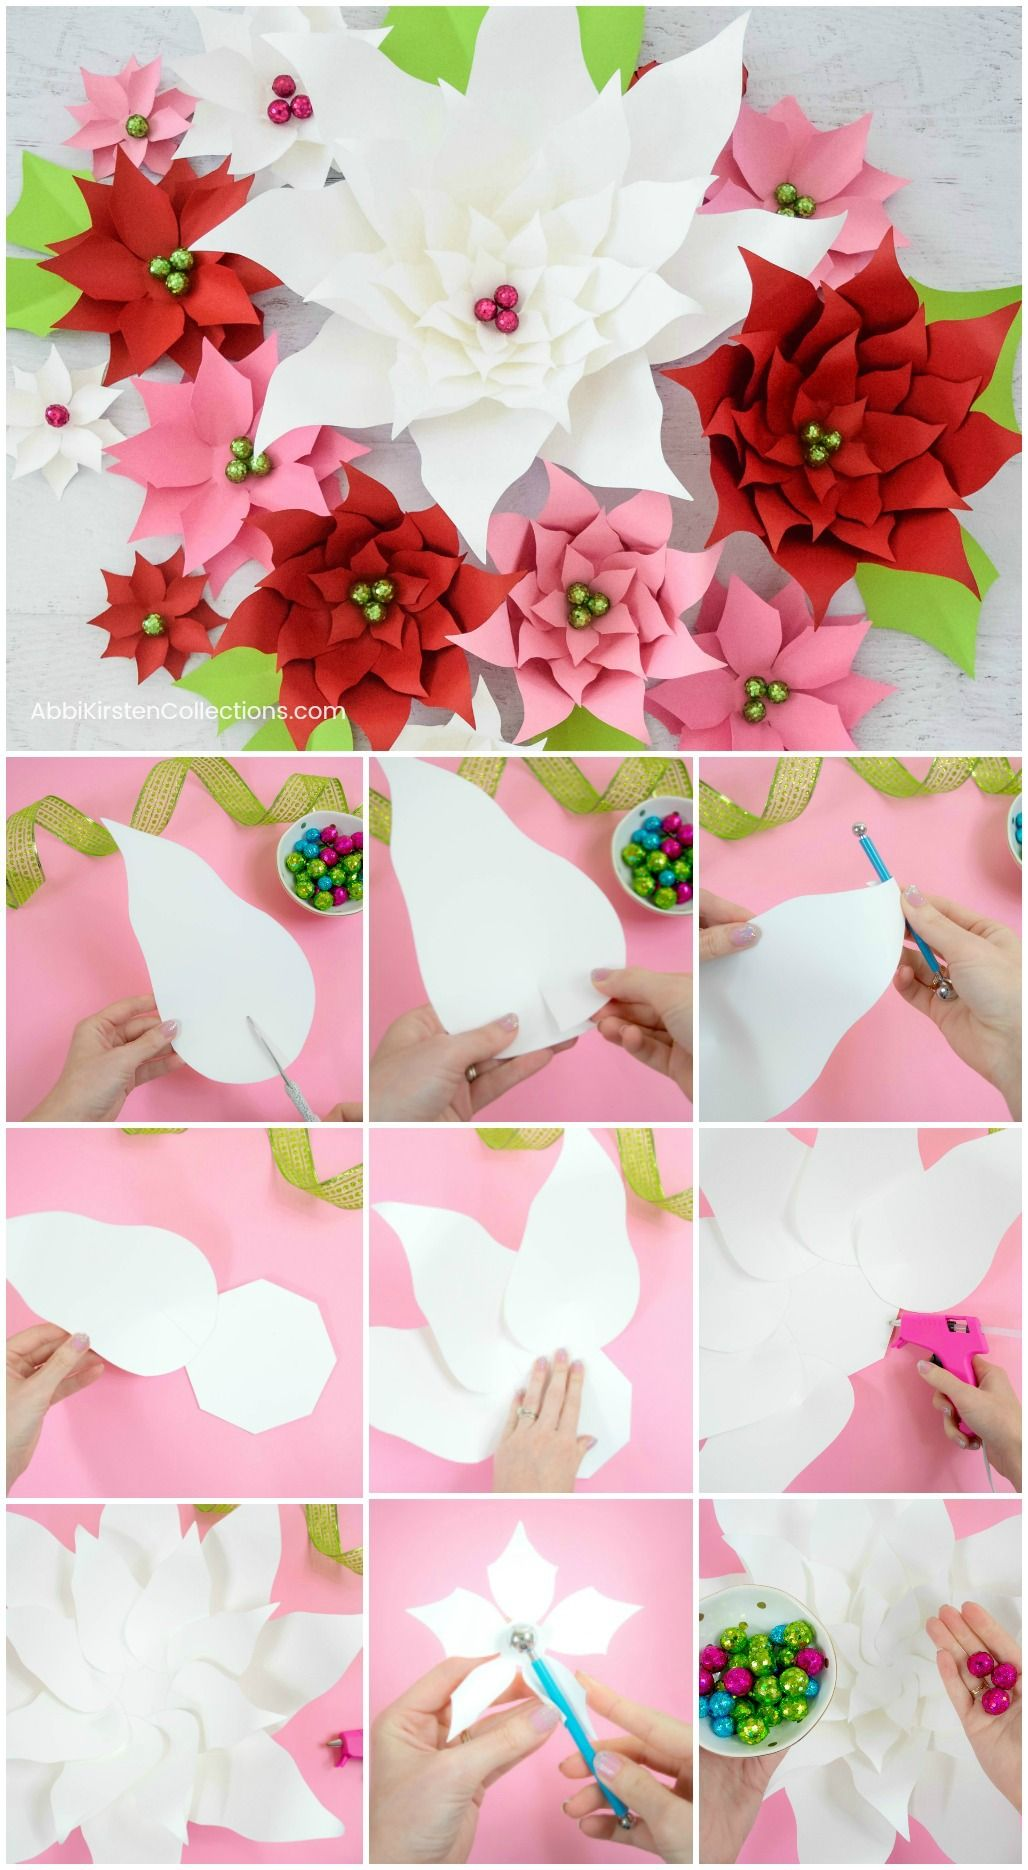 Diy Christmas Paper Poinsettia Decoration How To Make Large Paper